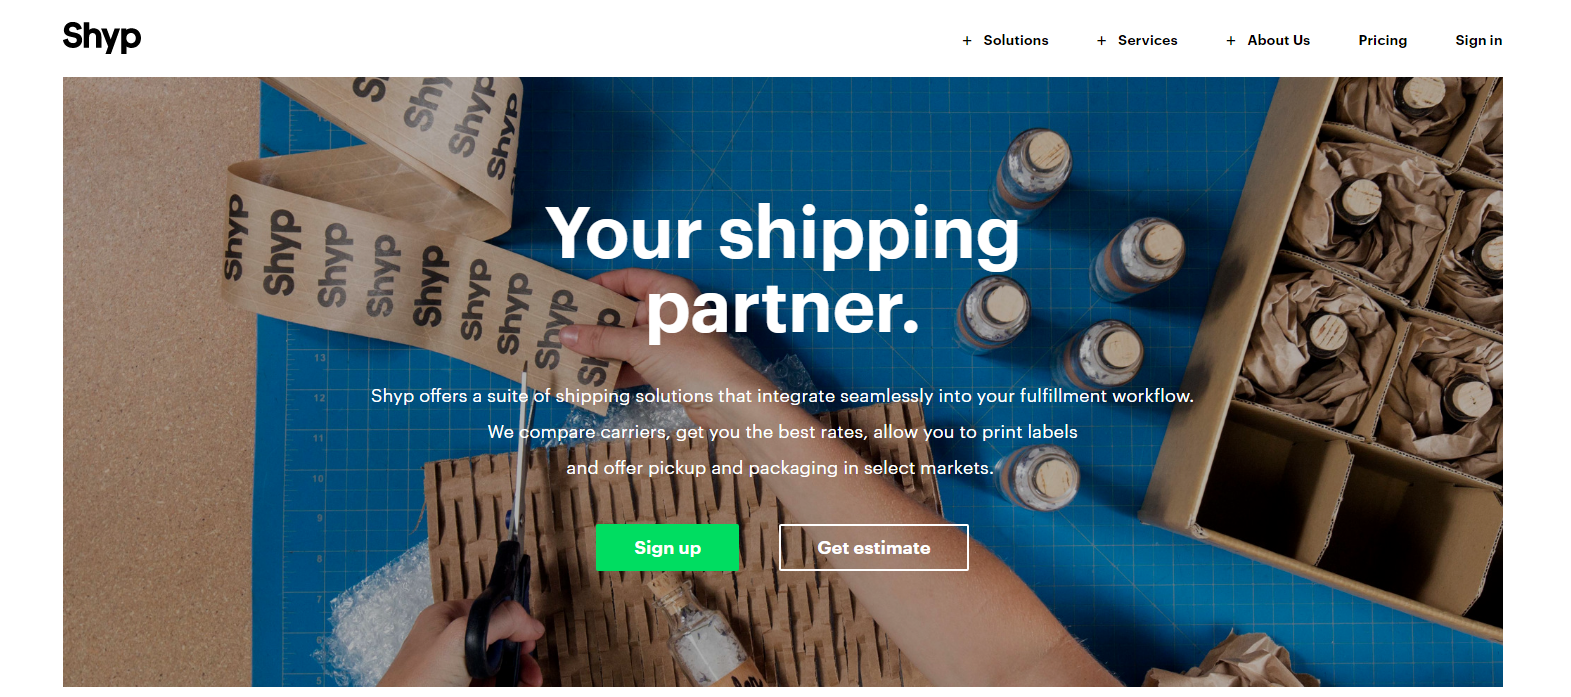 Shyp: eBay Shipping Services